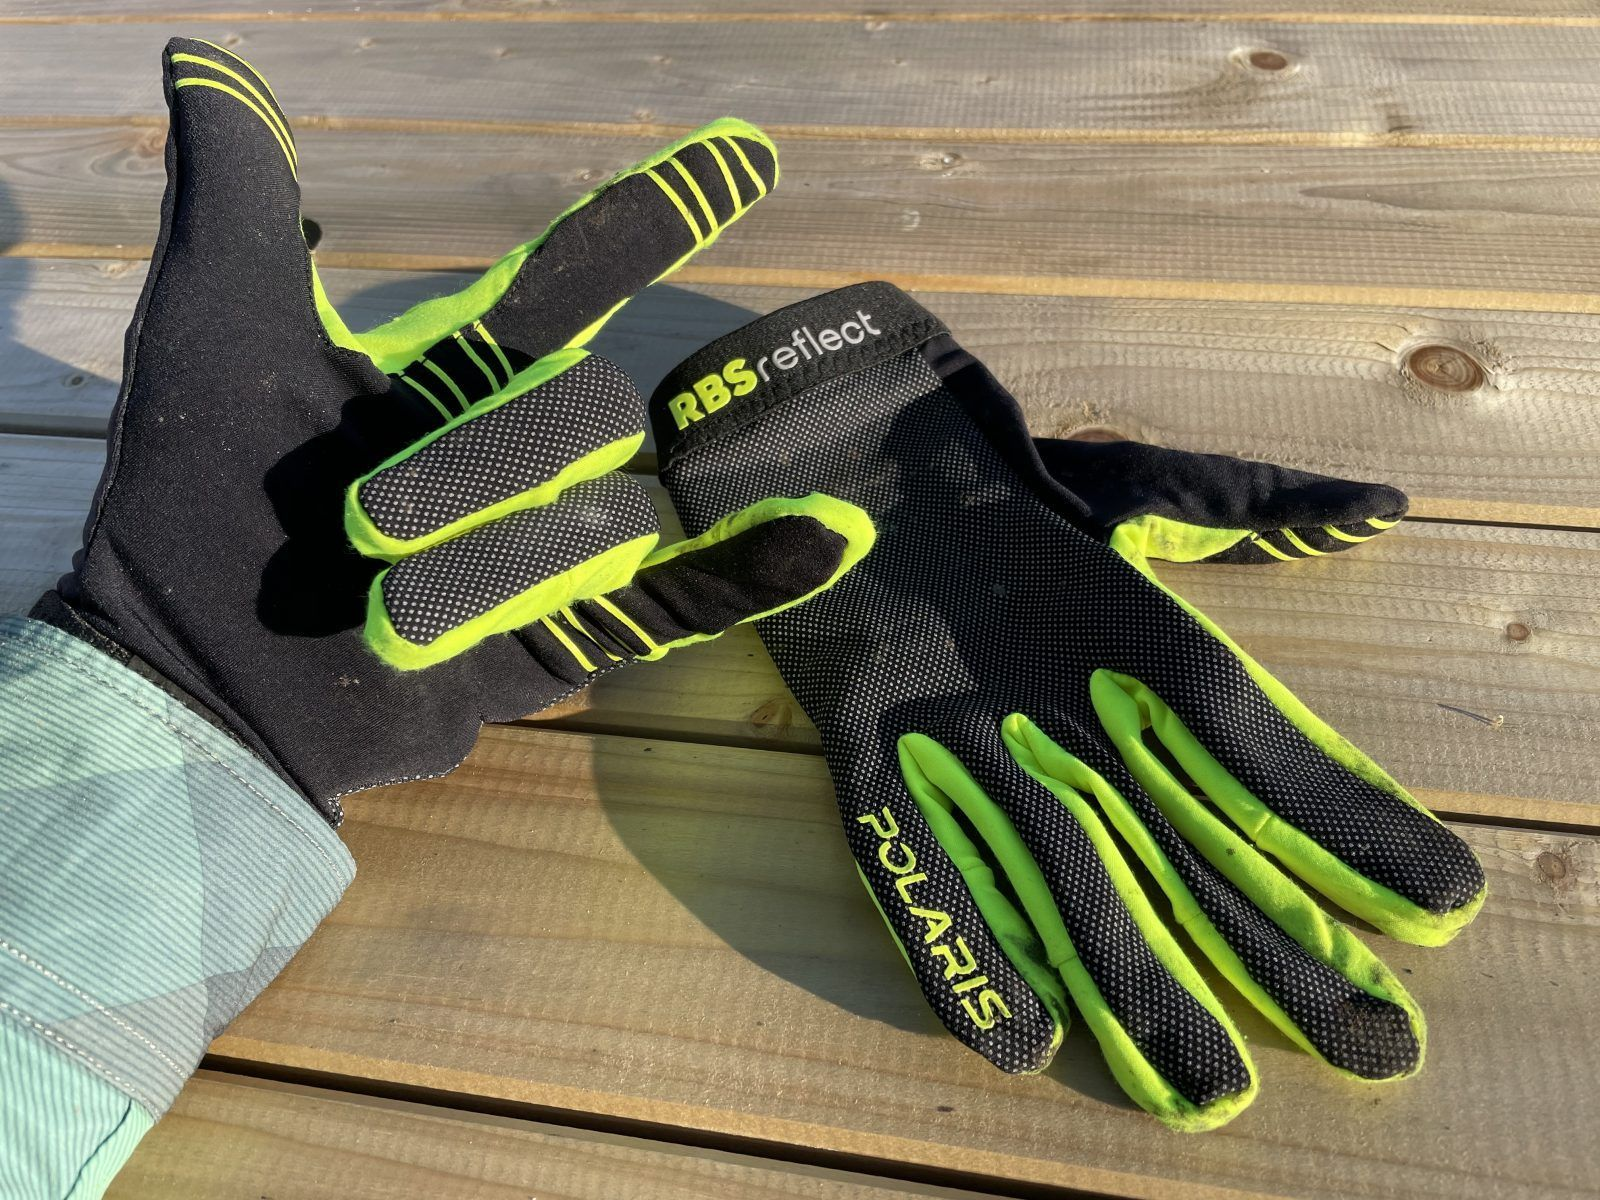 polaris rbs reflect glove